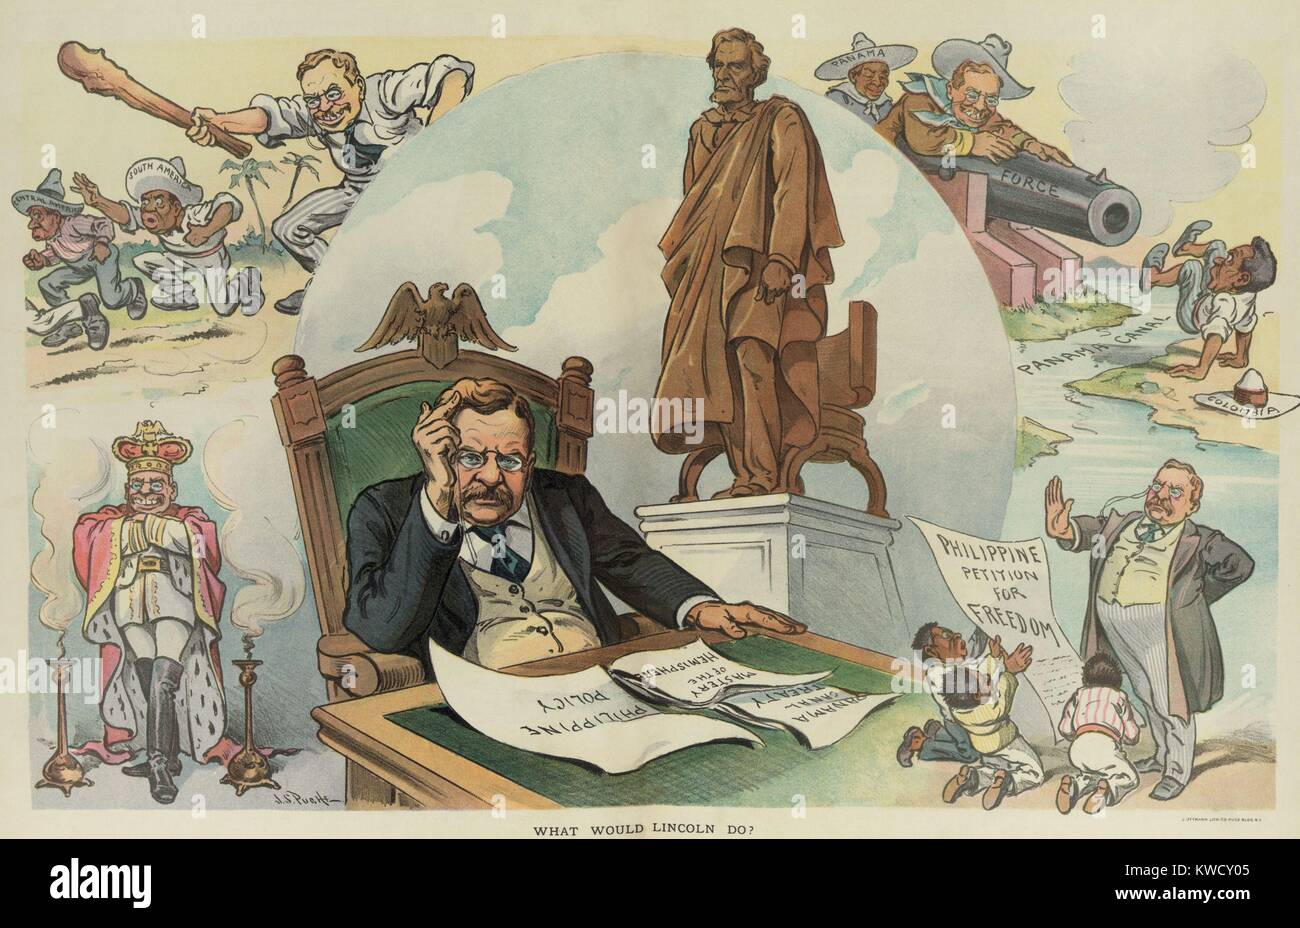 WHAT WOULD LINCOLN DO? PUCK Magazine cartoon of Sept. 28, 1905. Election year political cartoon critical of TRs - Stock Image